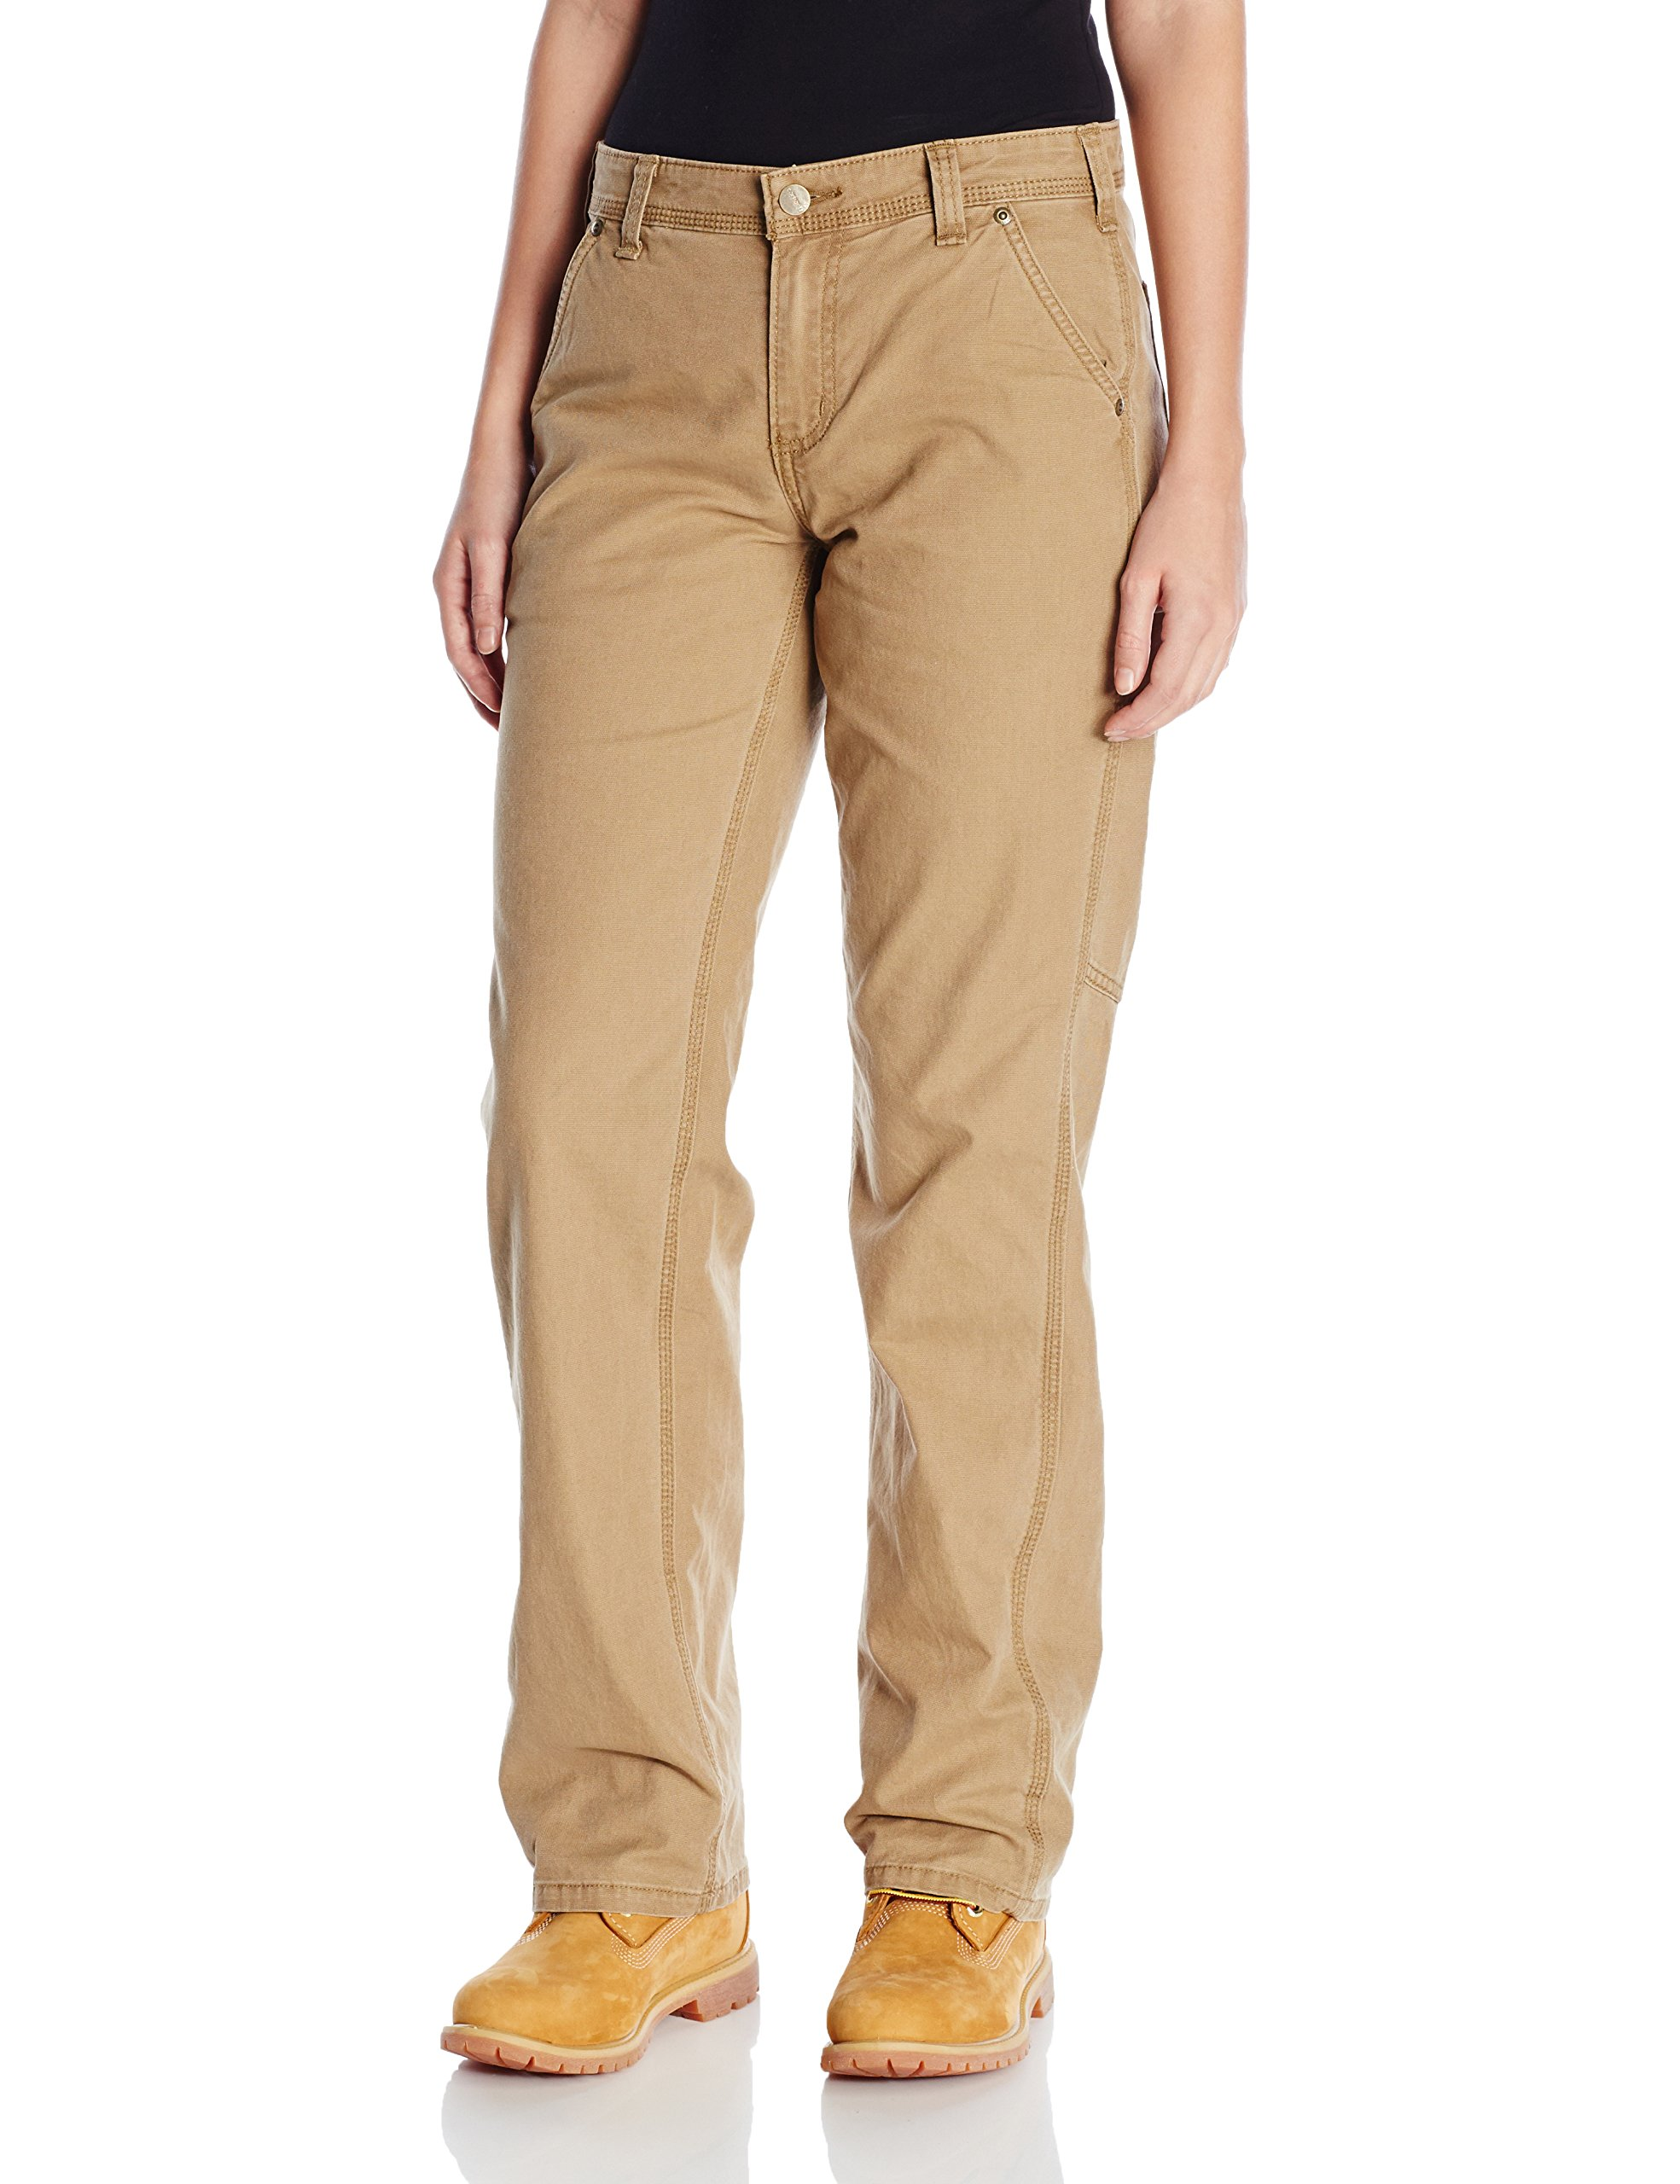 Carhartt Women's Original Fit Crawford Pant, Yukon, 4 Short